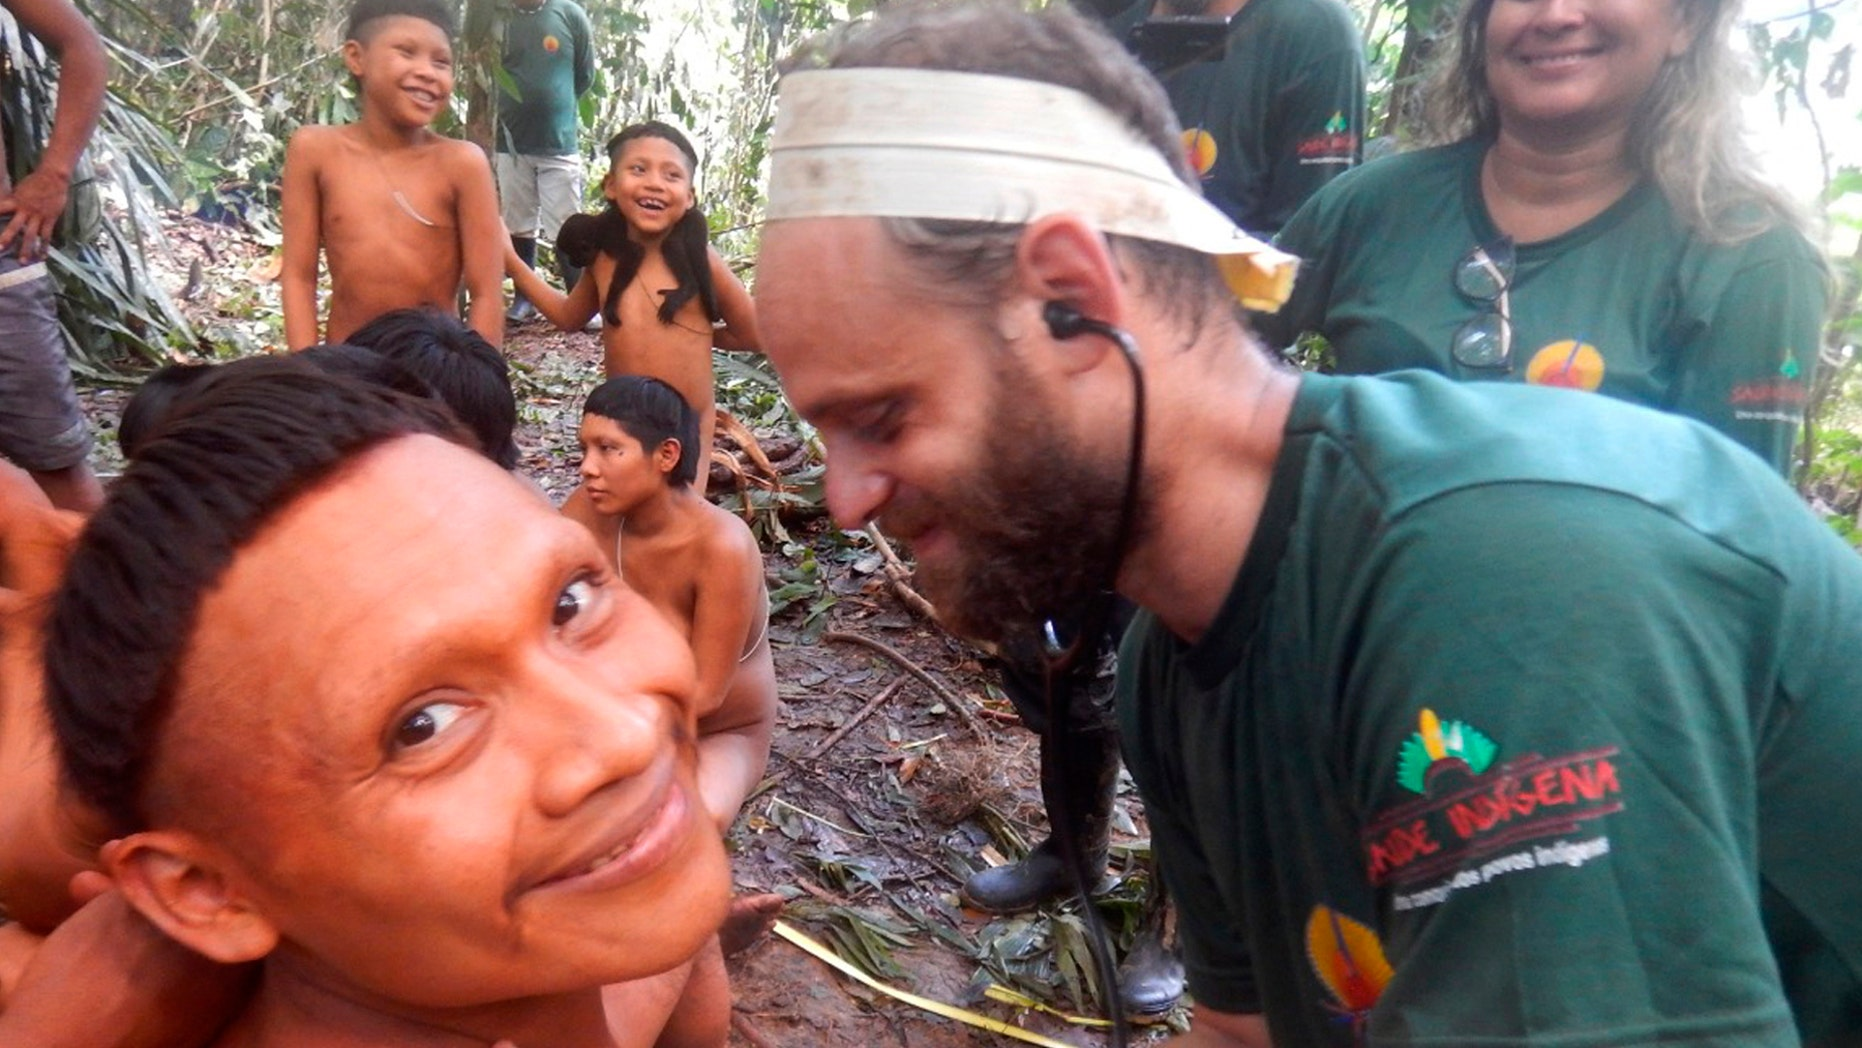 In this 2019 handout photo released by Brazil's National Indian Foundation, or FUNAI, a Korubo man smiled as a FUNAI member checked his heart rate during an expedition to the Javari Valley.